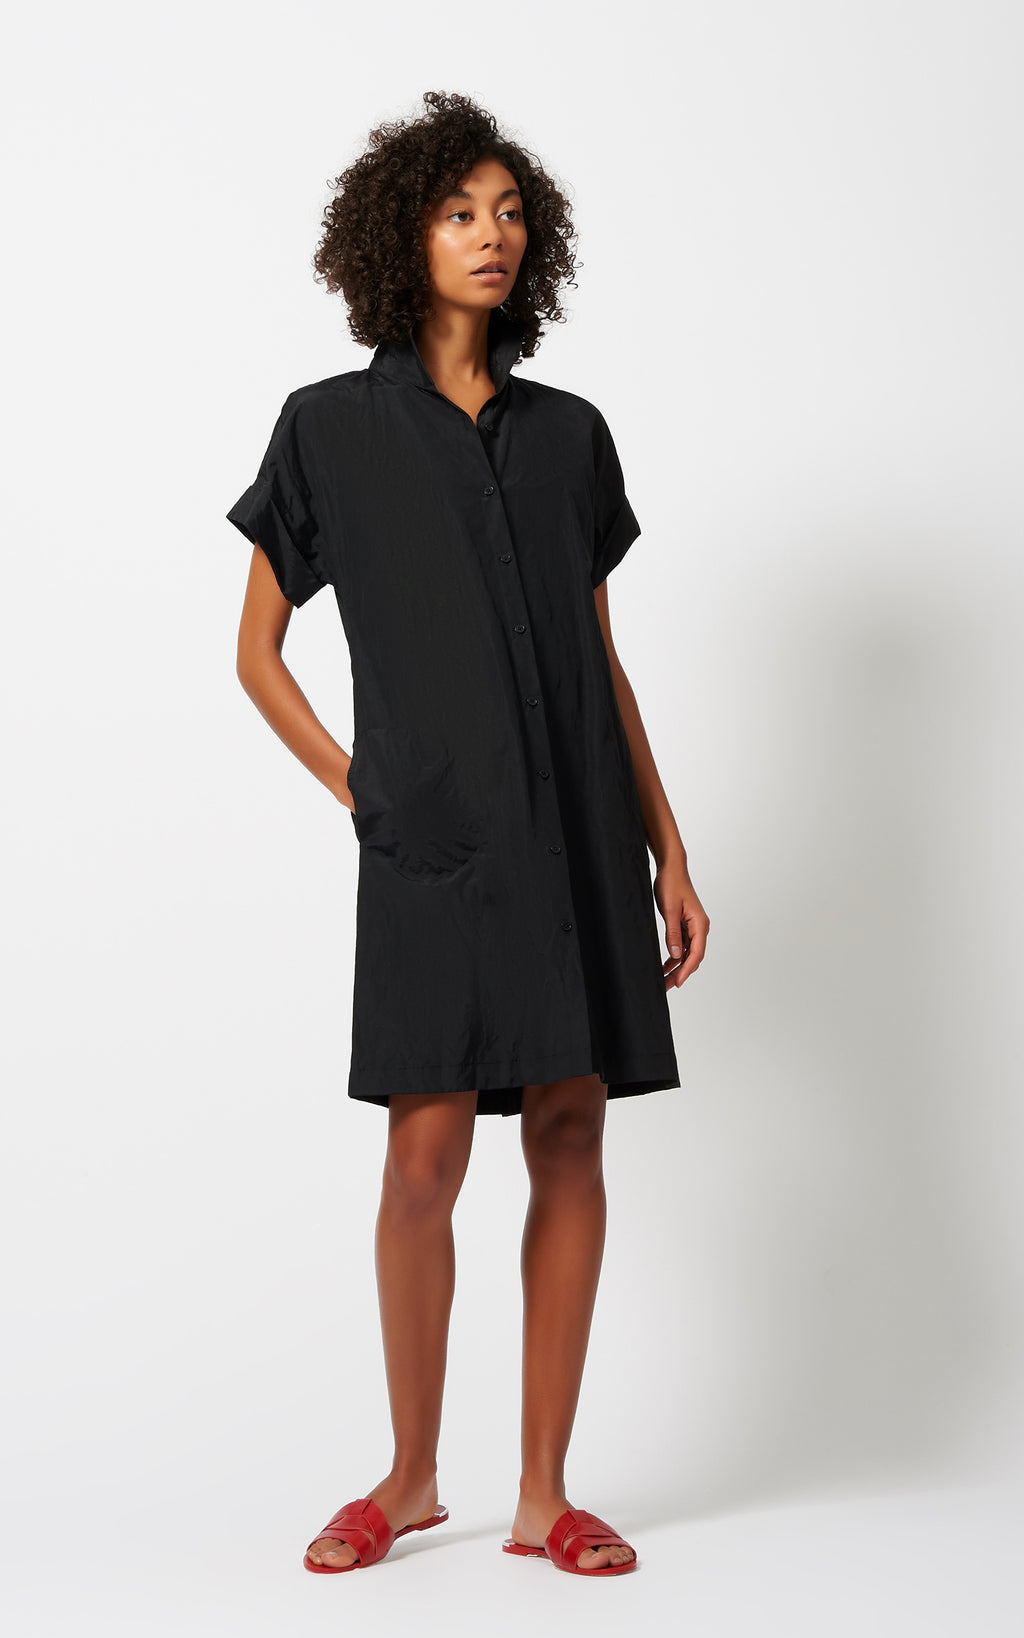 KIMONO DRESS - BLACK COTTON/NYLON